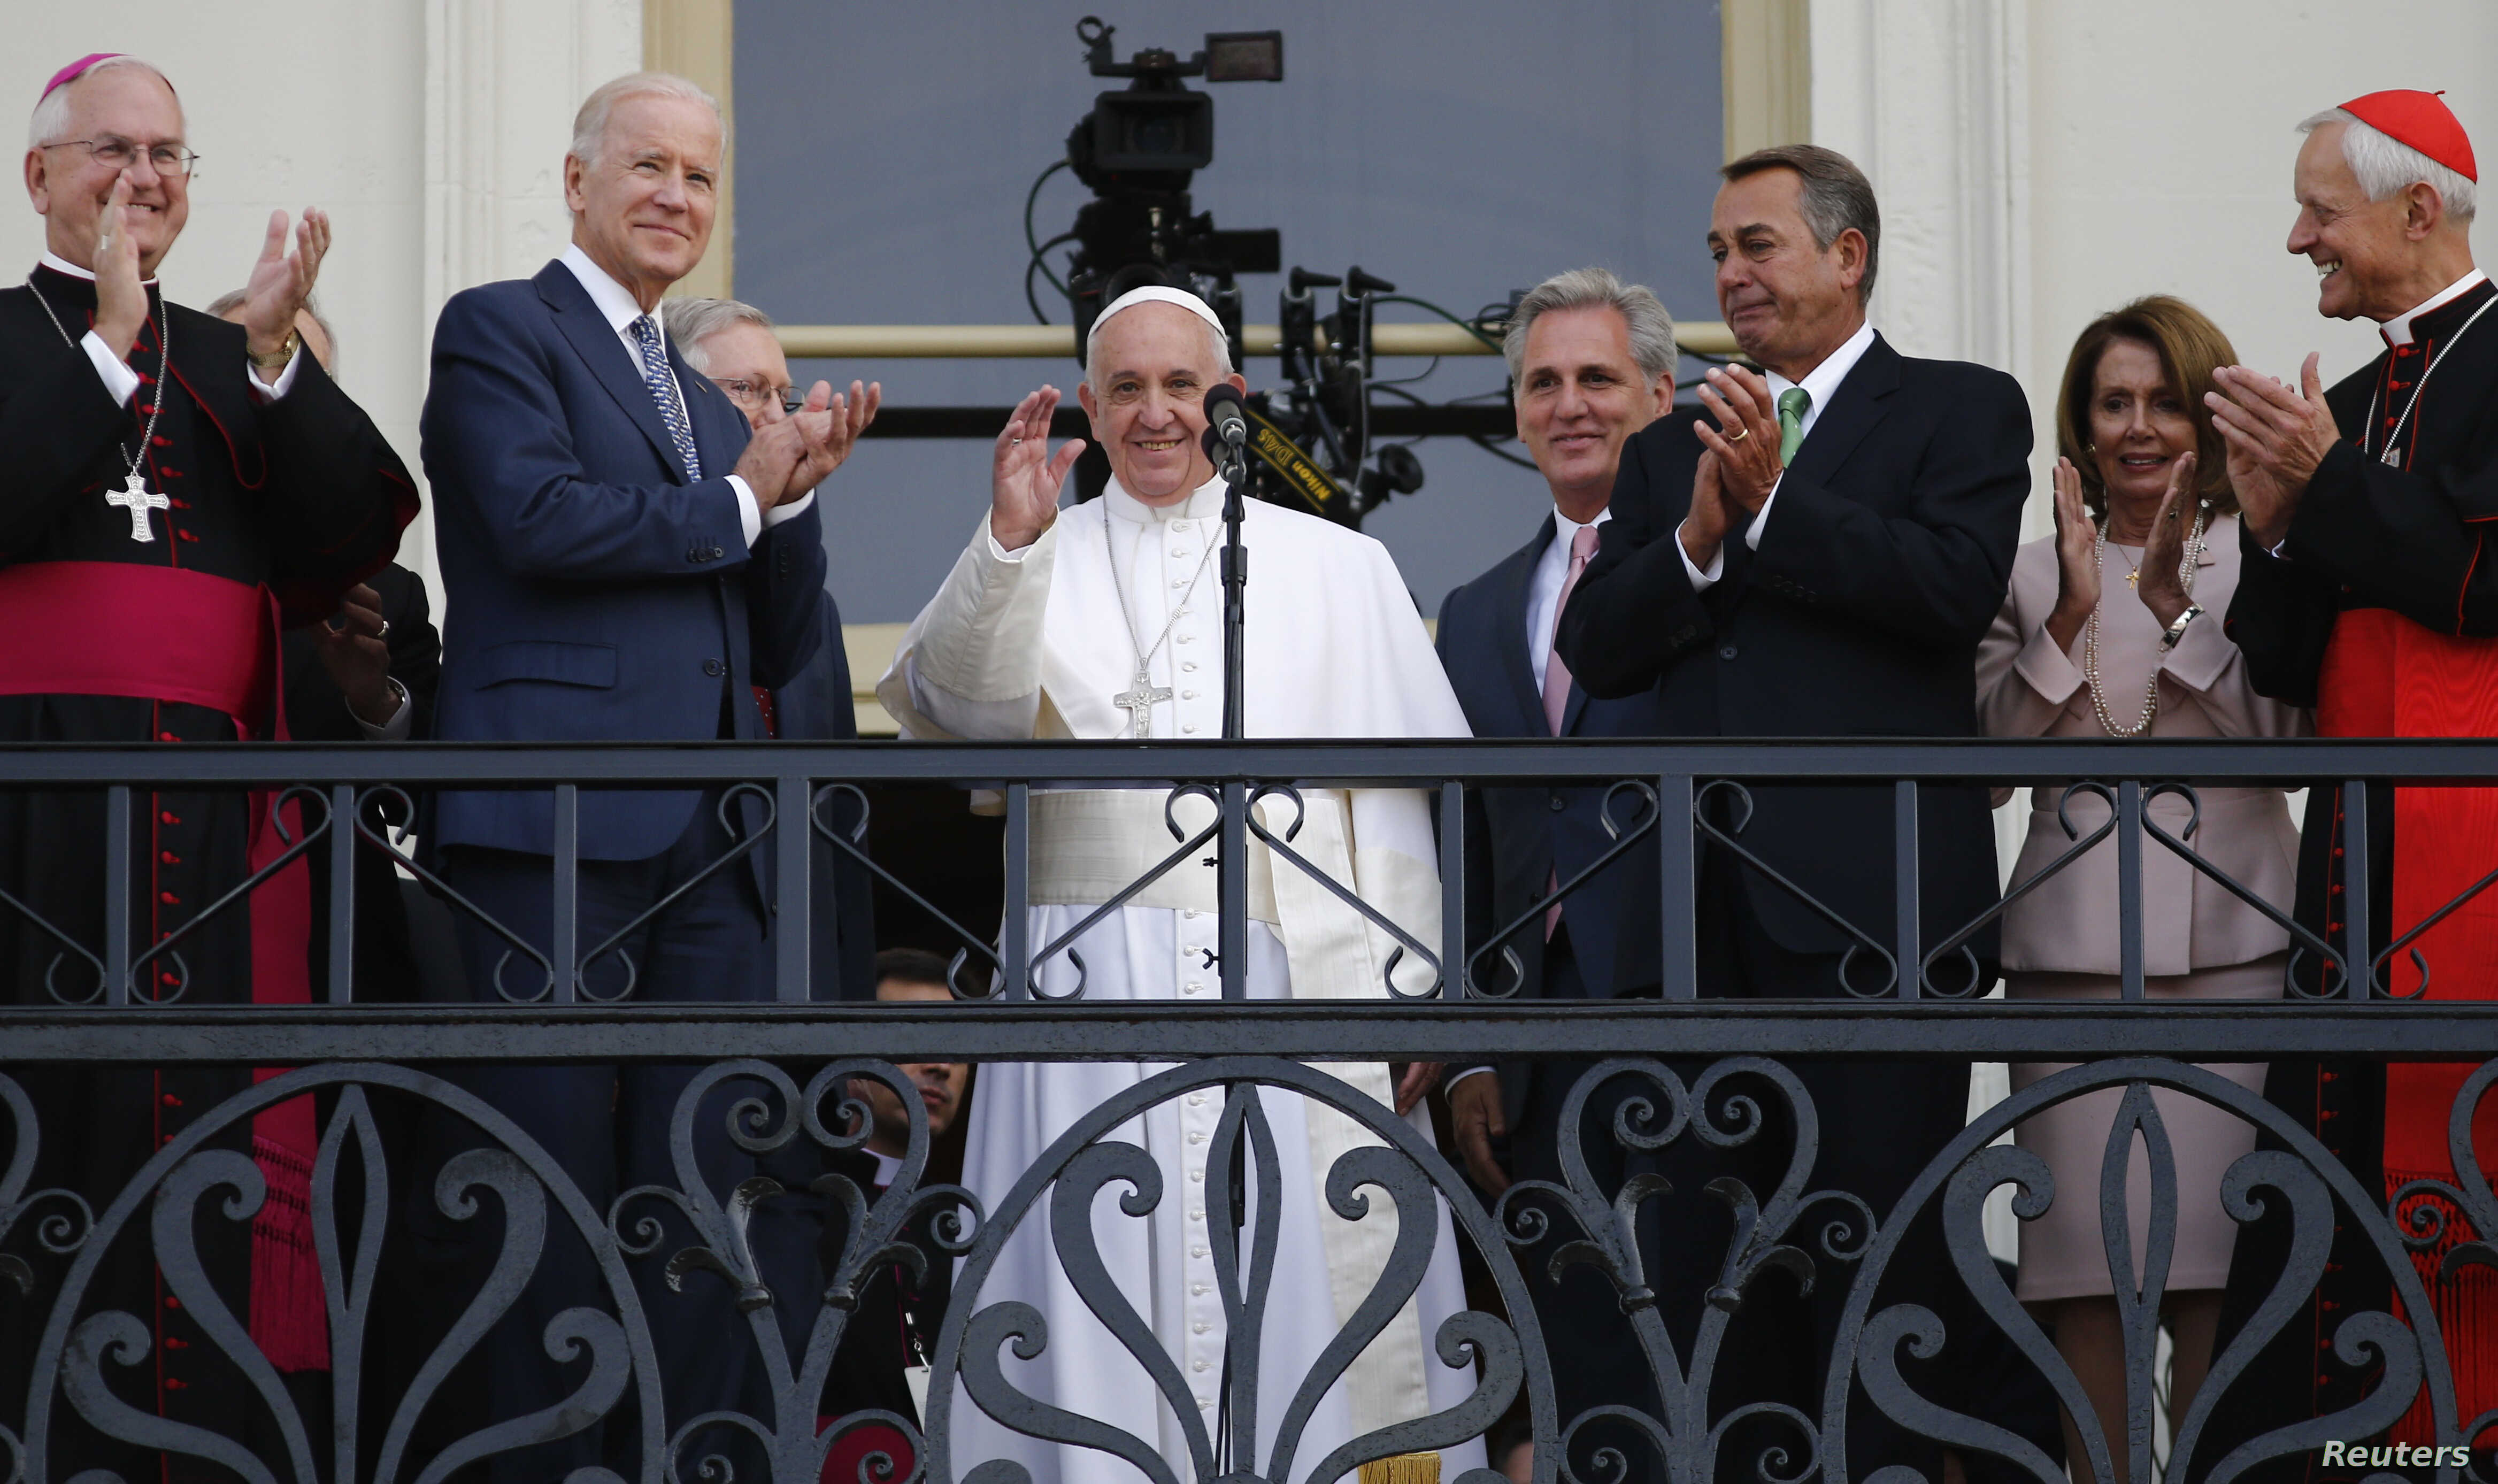 Pope Francis waves from the Speaker's Balcony after concluding his addresses before a joint meeting of the U.S. Congress, Sept. 24, 2015.